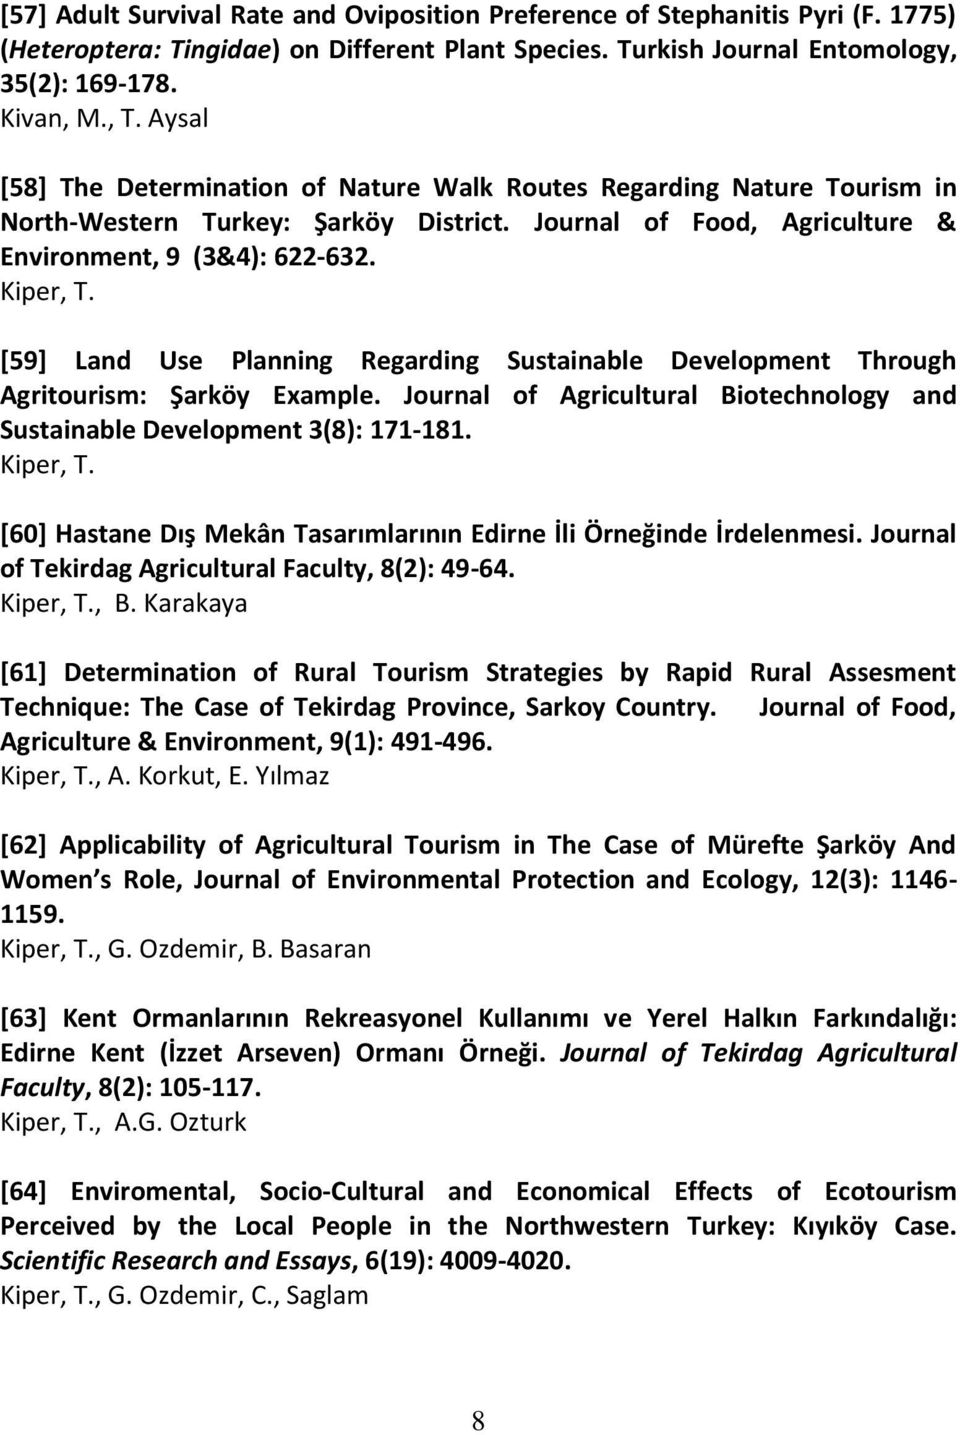 [59] Land Use Planning Regarding Sustainable Development Through Agritourism: Şarköy Example. Journal of Agricultural Biotechnology and Sustainable Development 3(8): 171-181. Kiper, T.